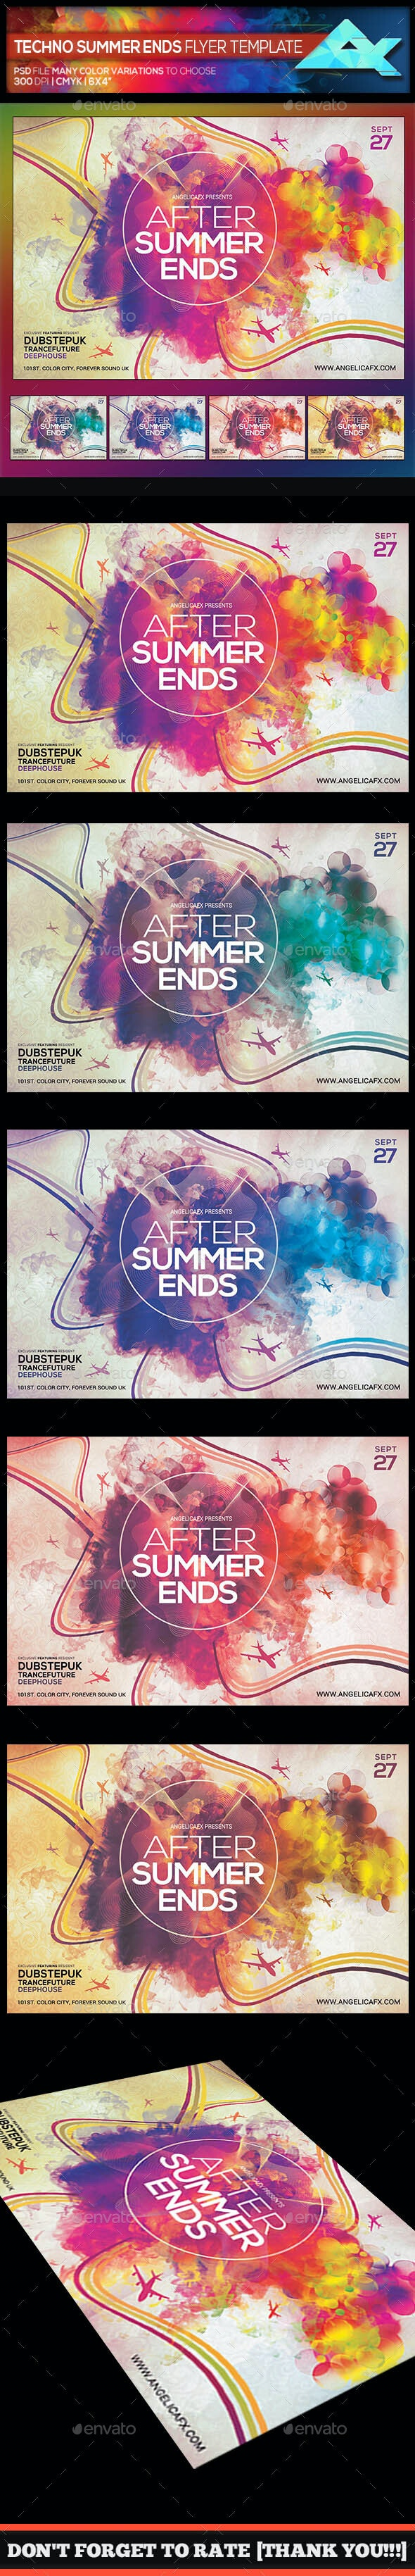 After Summer Ends II Photoshop Flyer Template - Flyers Print Templates